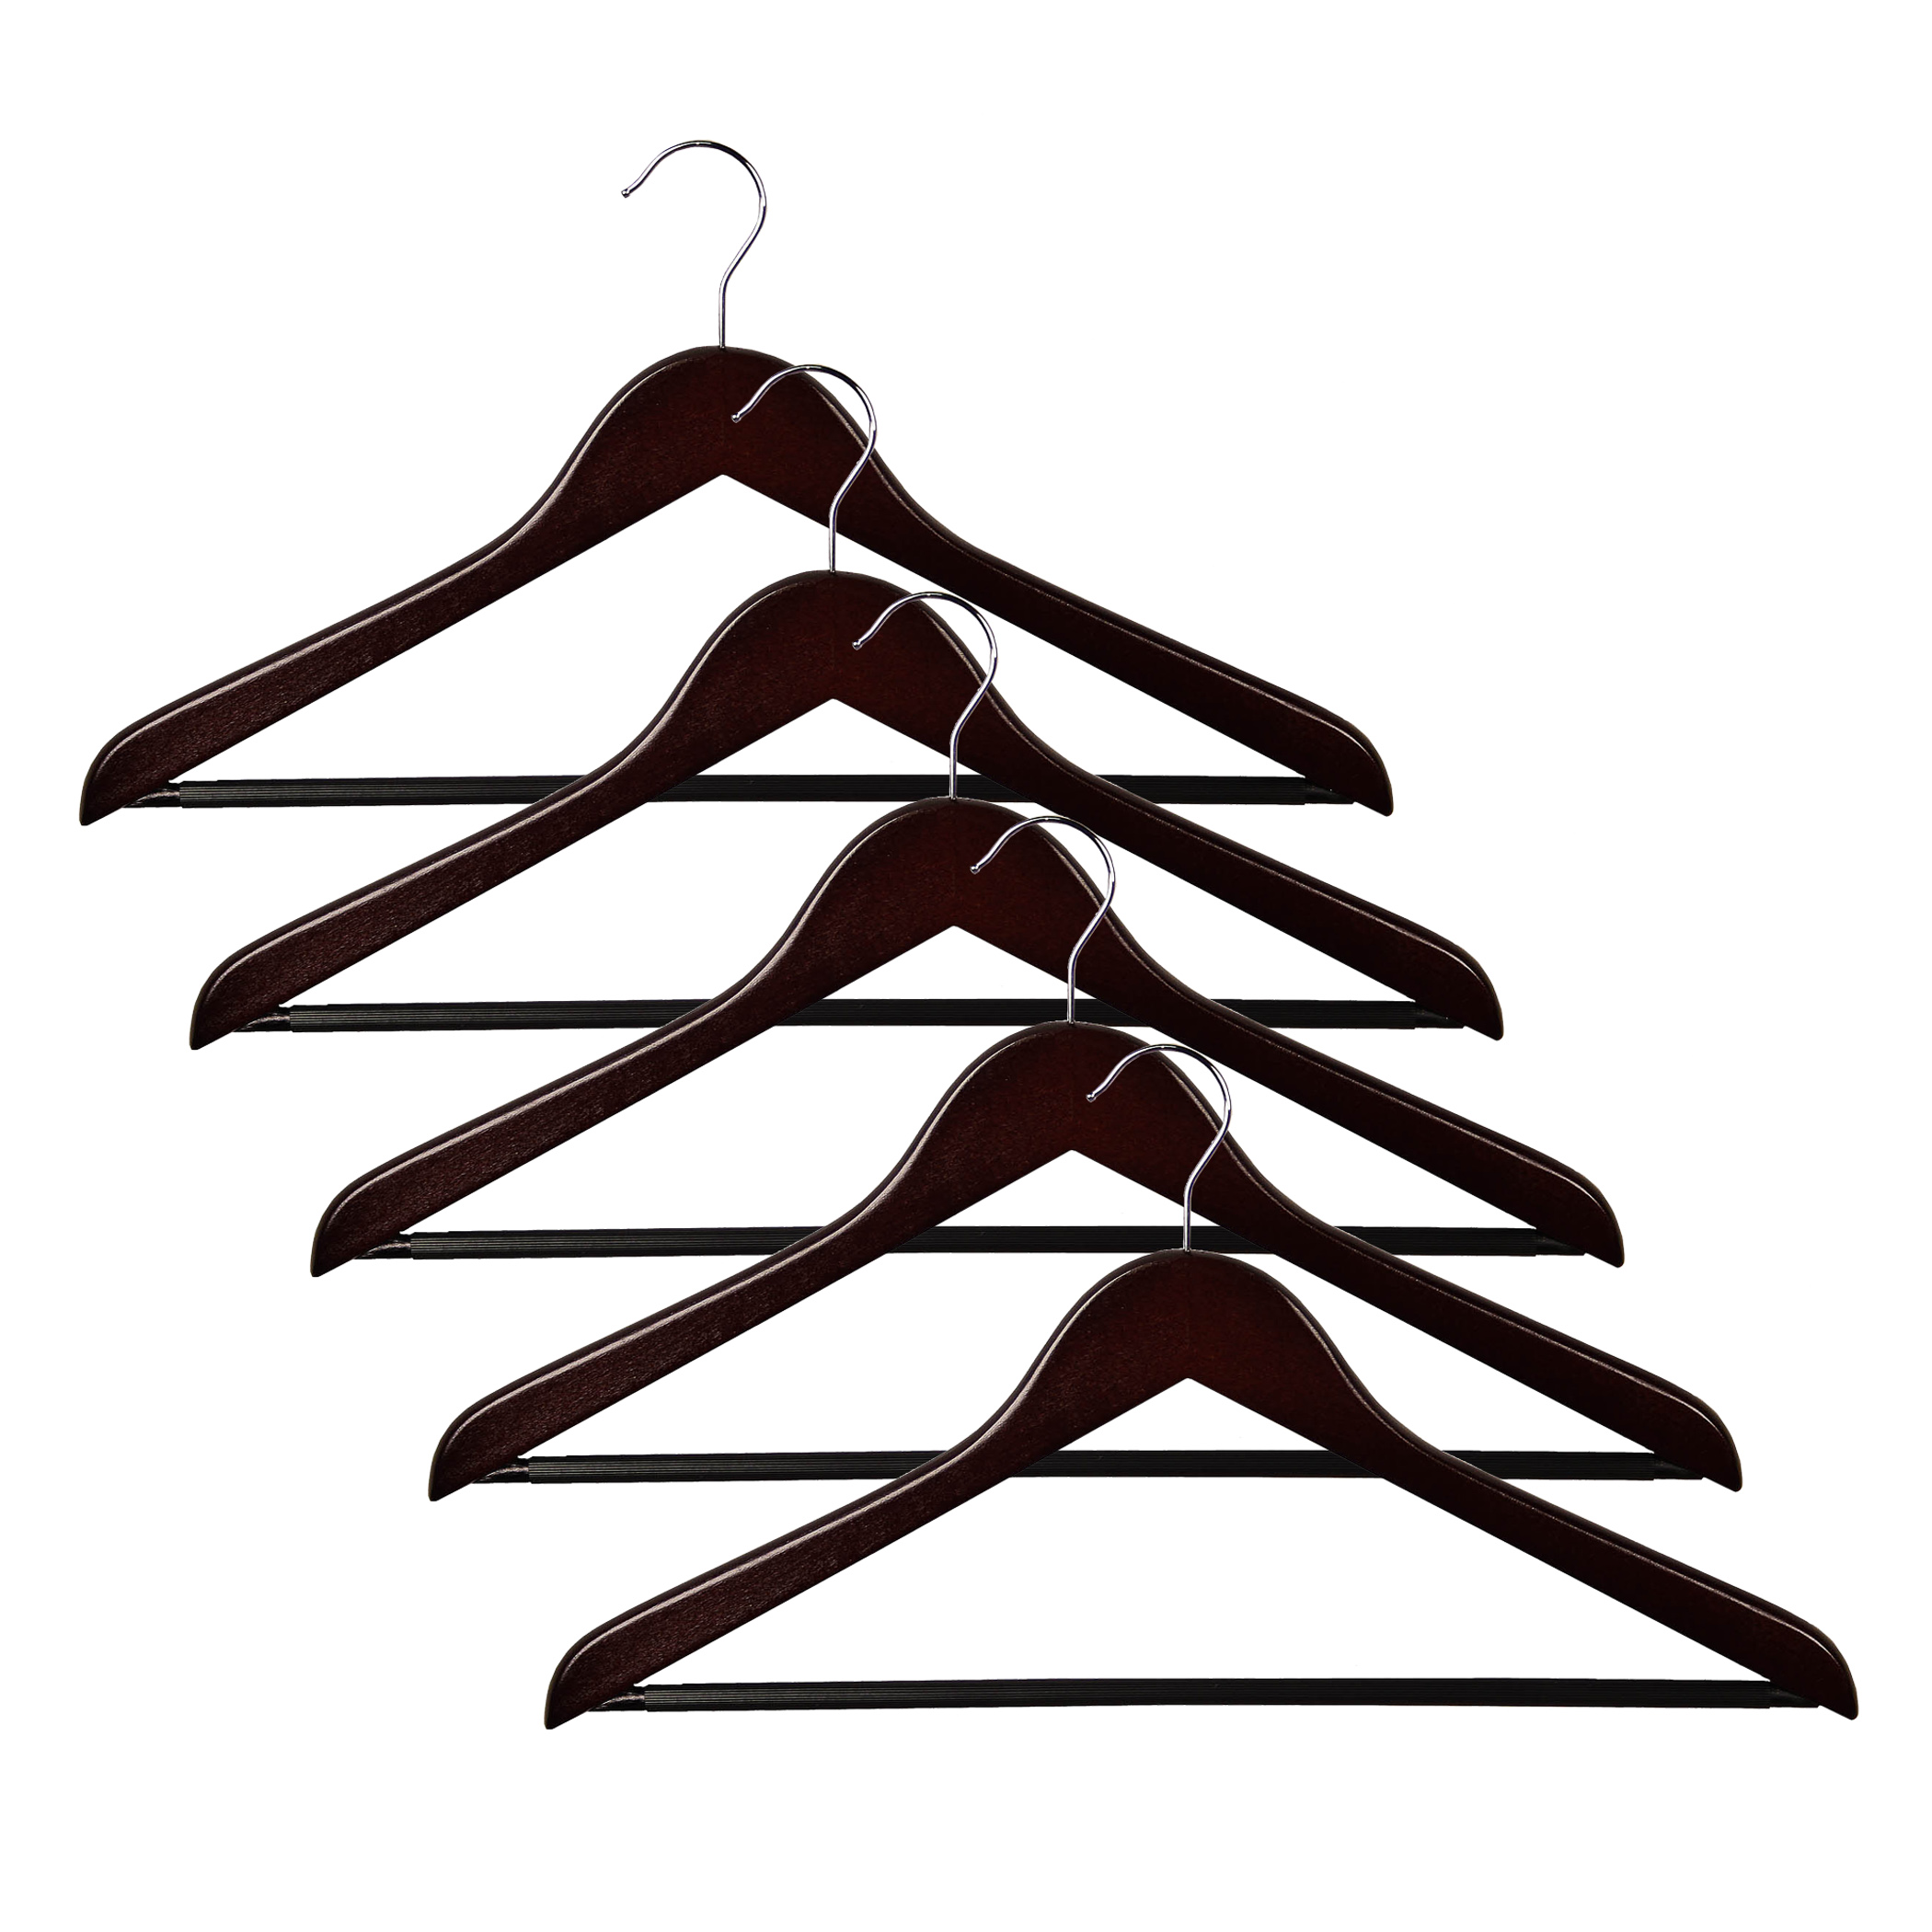 Promo/Dark Walnut Suit Hanger set of 5